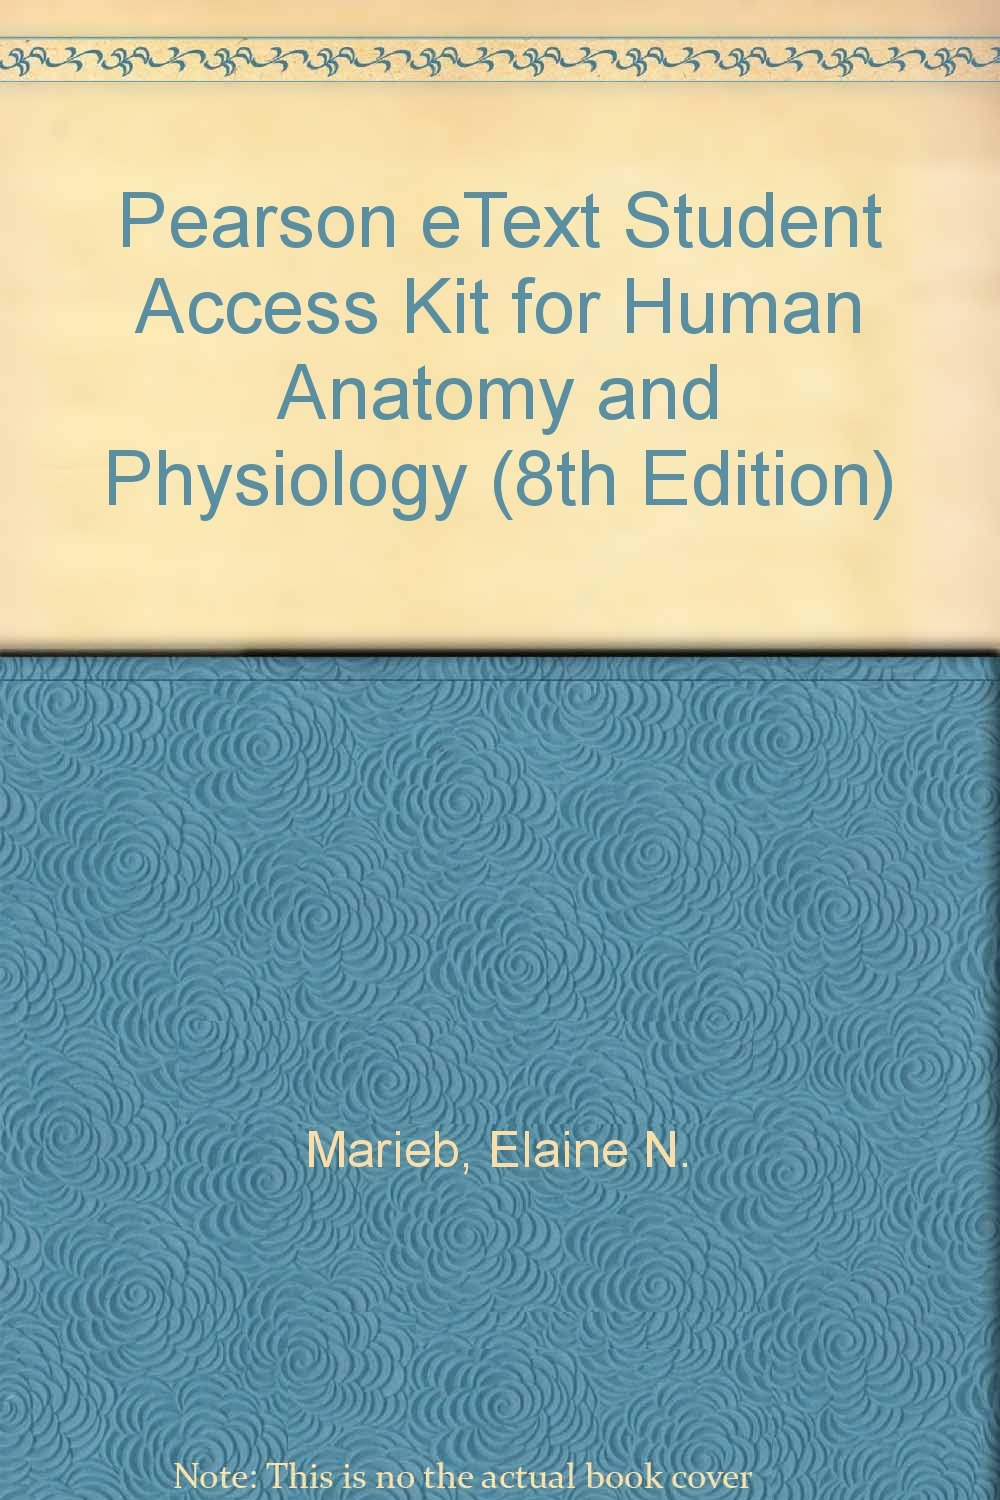 Buy Pearson eText Student Access Kit for Human Anatomy and ...